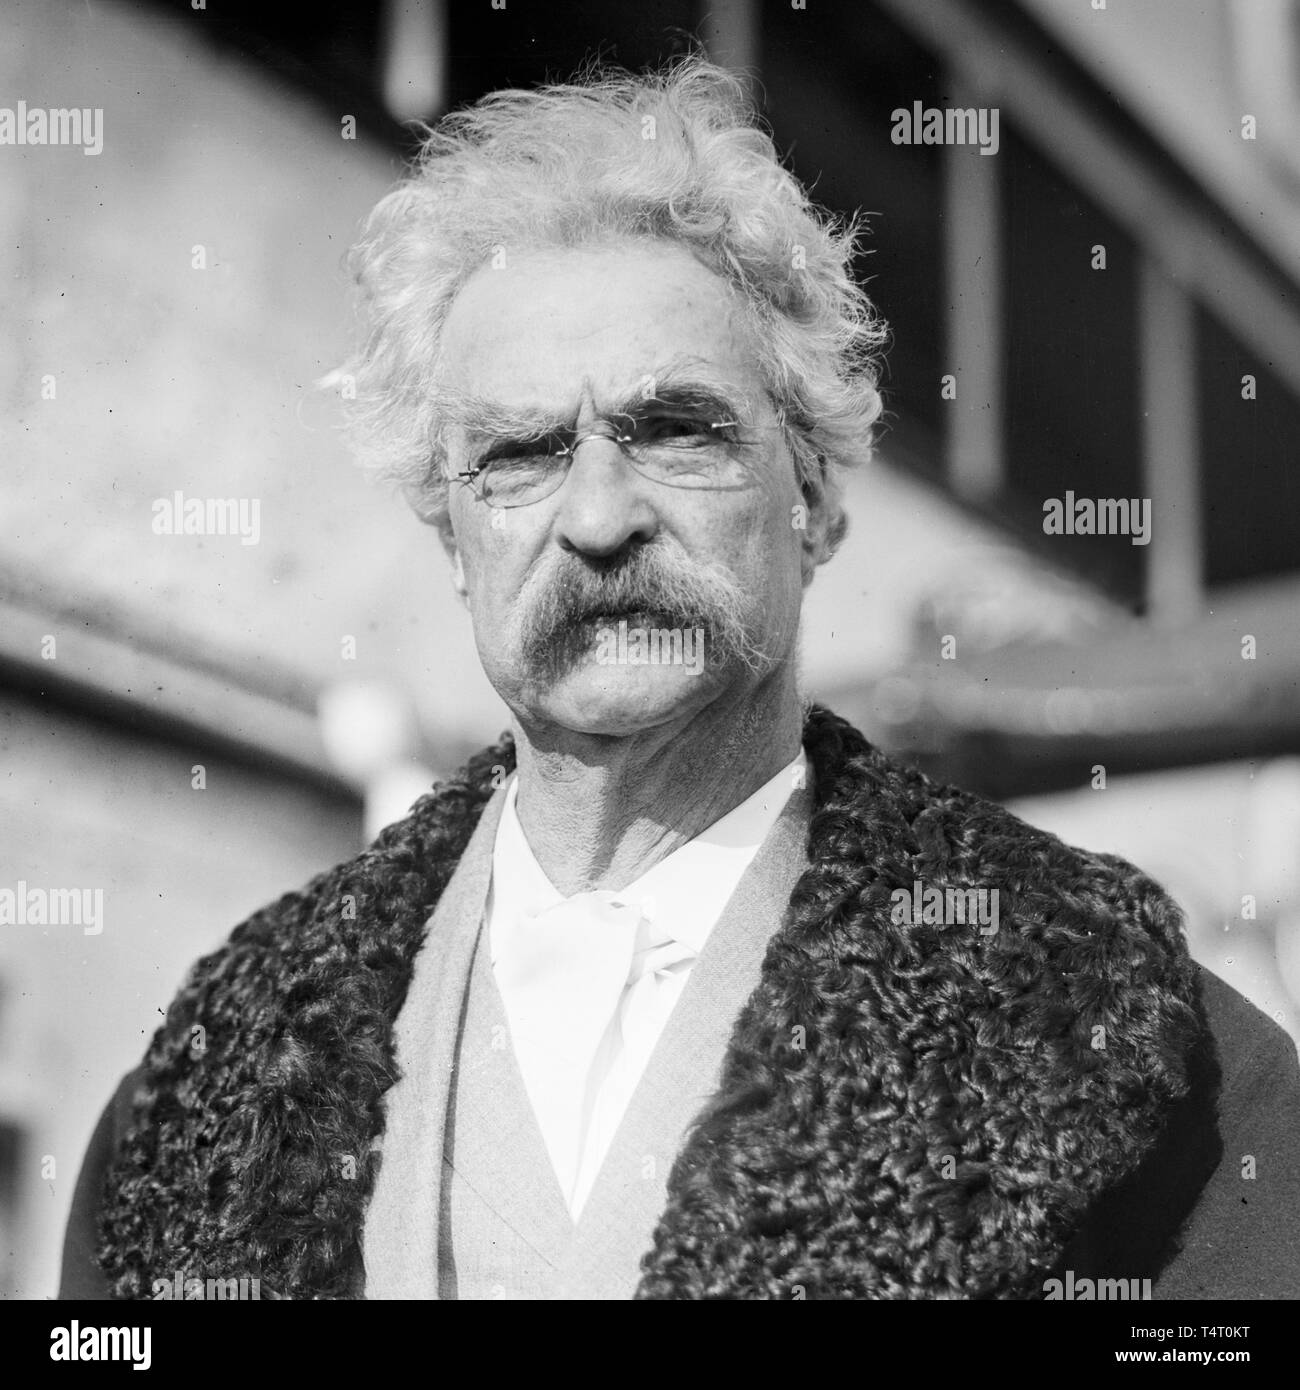 Mark Twain (1835-1910), portrait photograph, 20 December 1909 Stock Photo